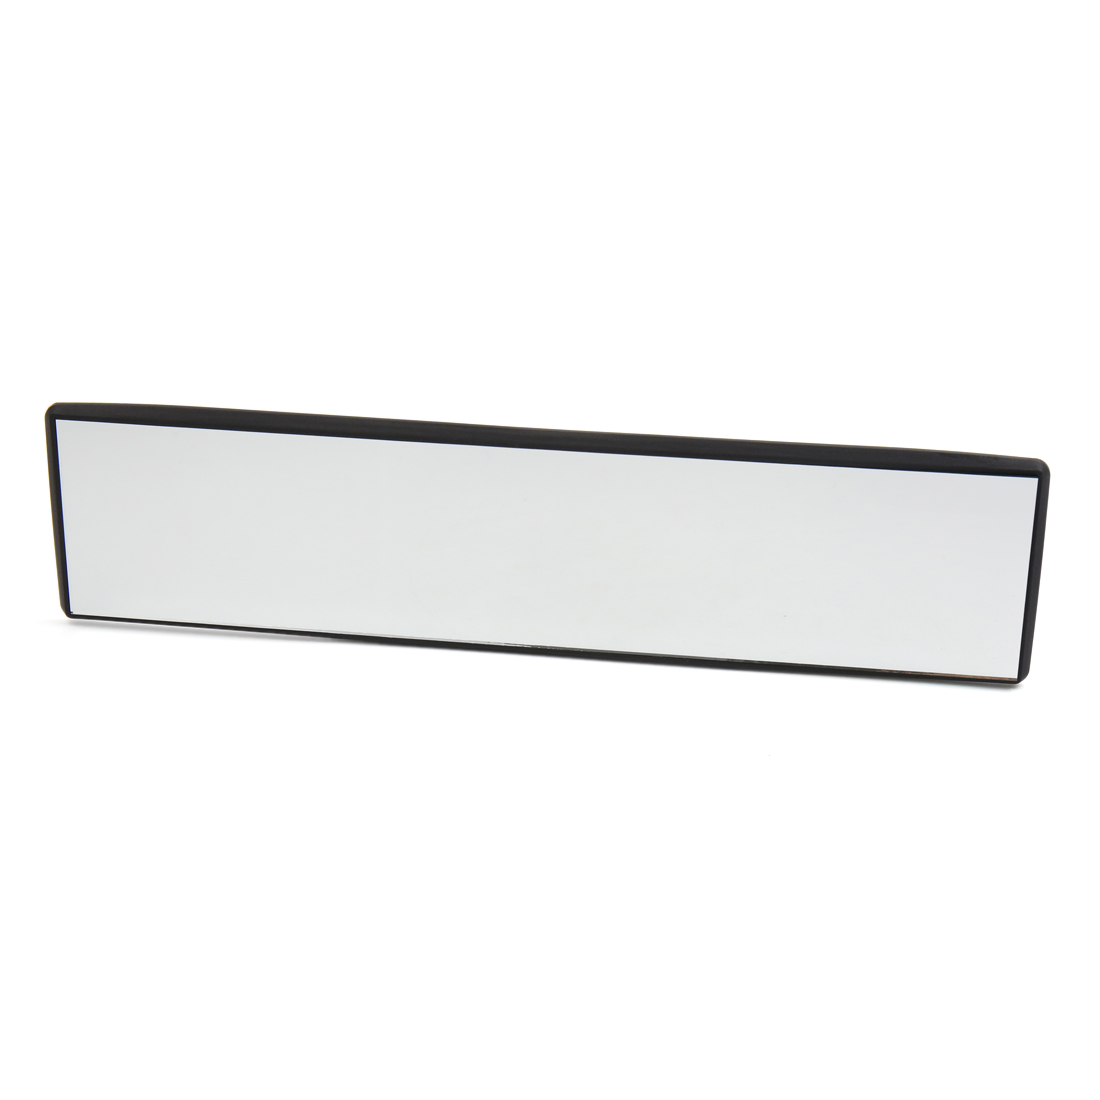 300mm Length Black Plastic Frame Car Interior Wide Angle Flat Rearview Mirror